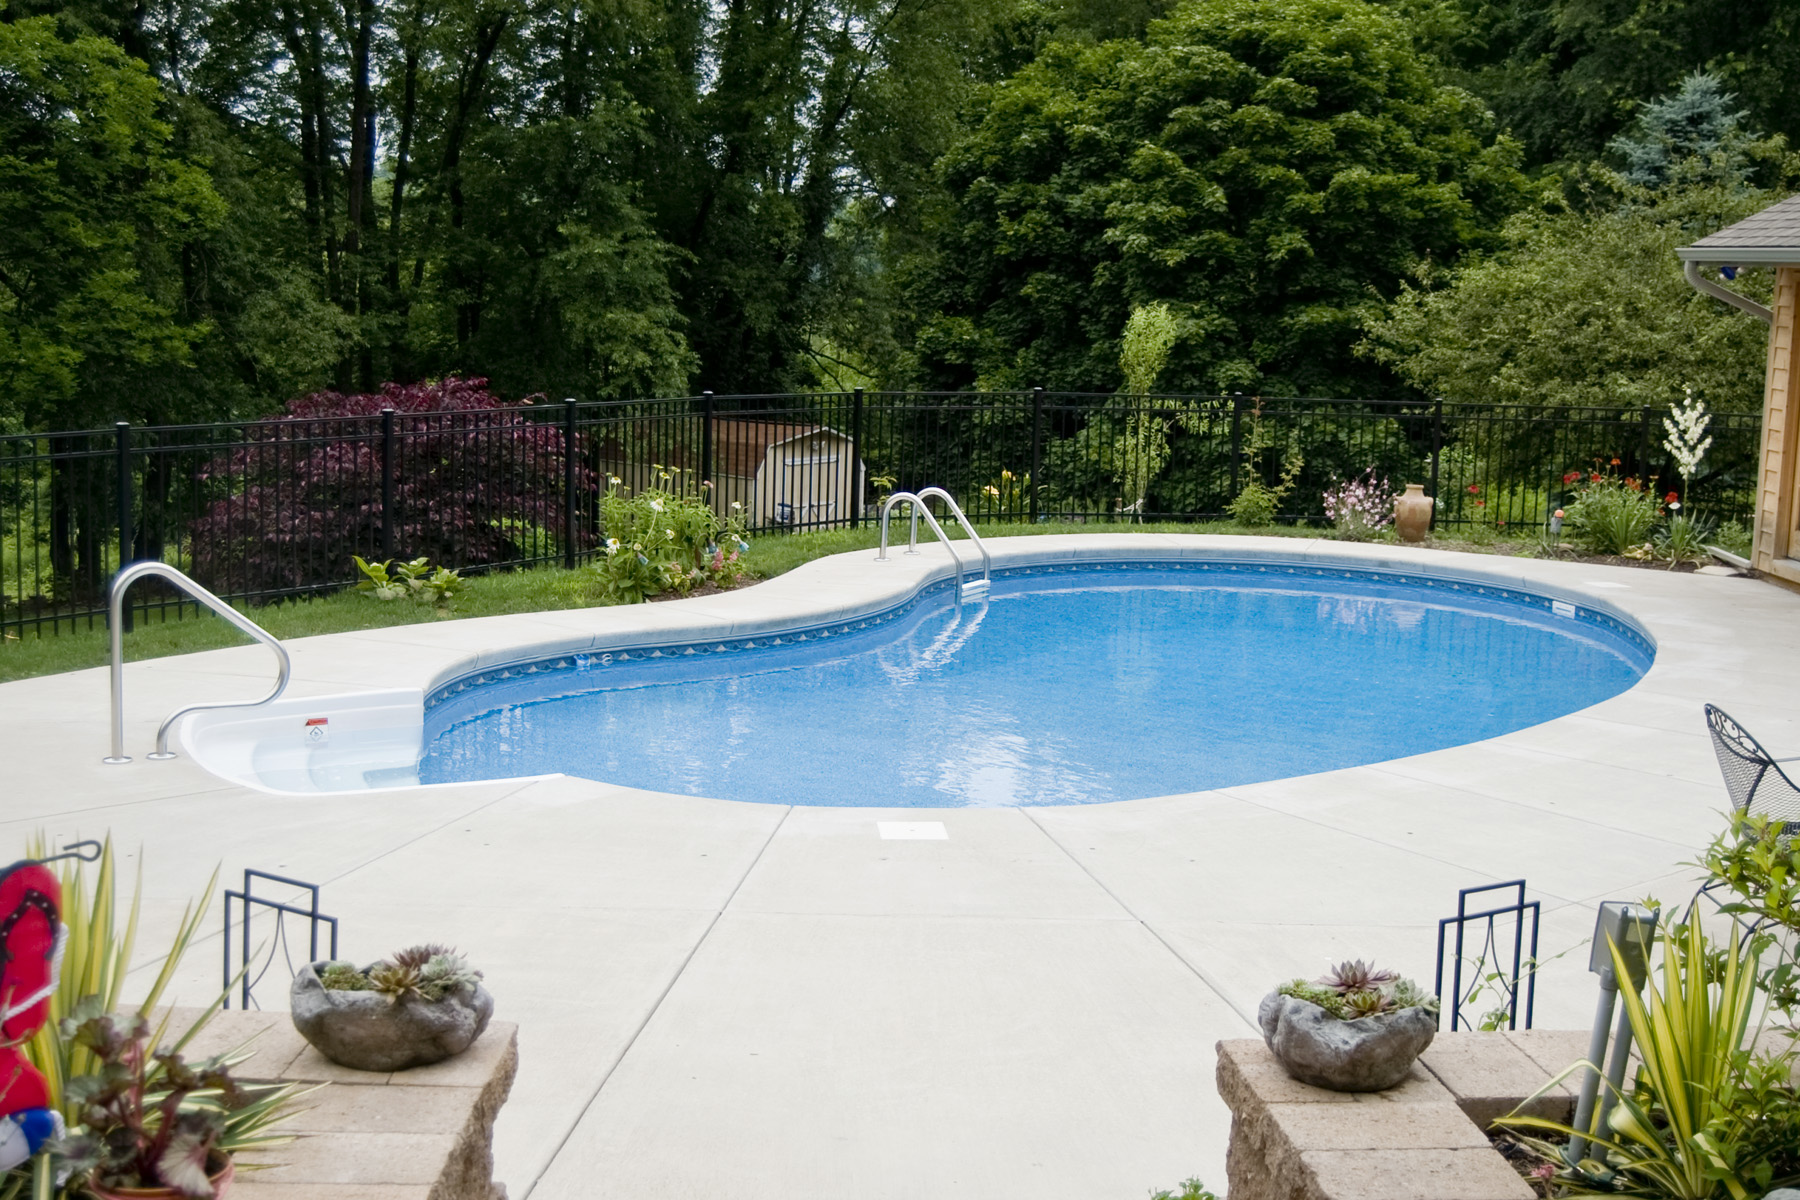 16 X 32 Non Diving Kidney Ideal For A Backyard Patio Pool